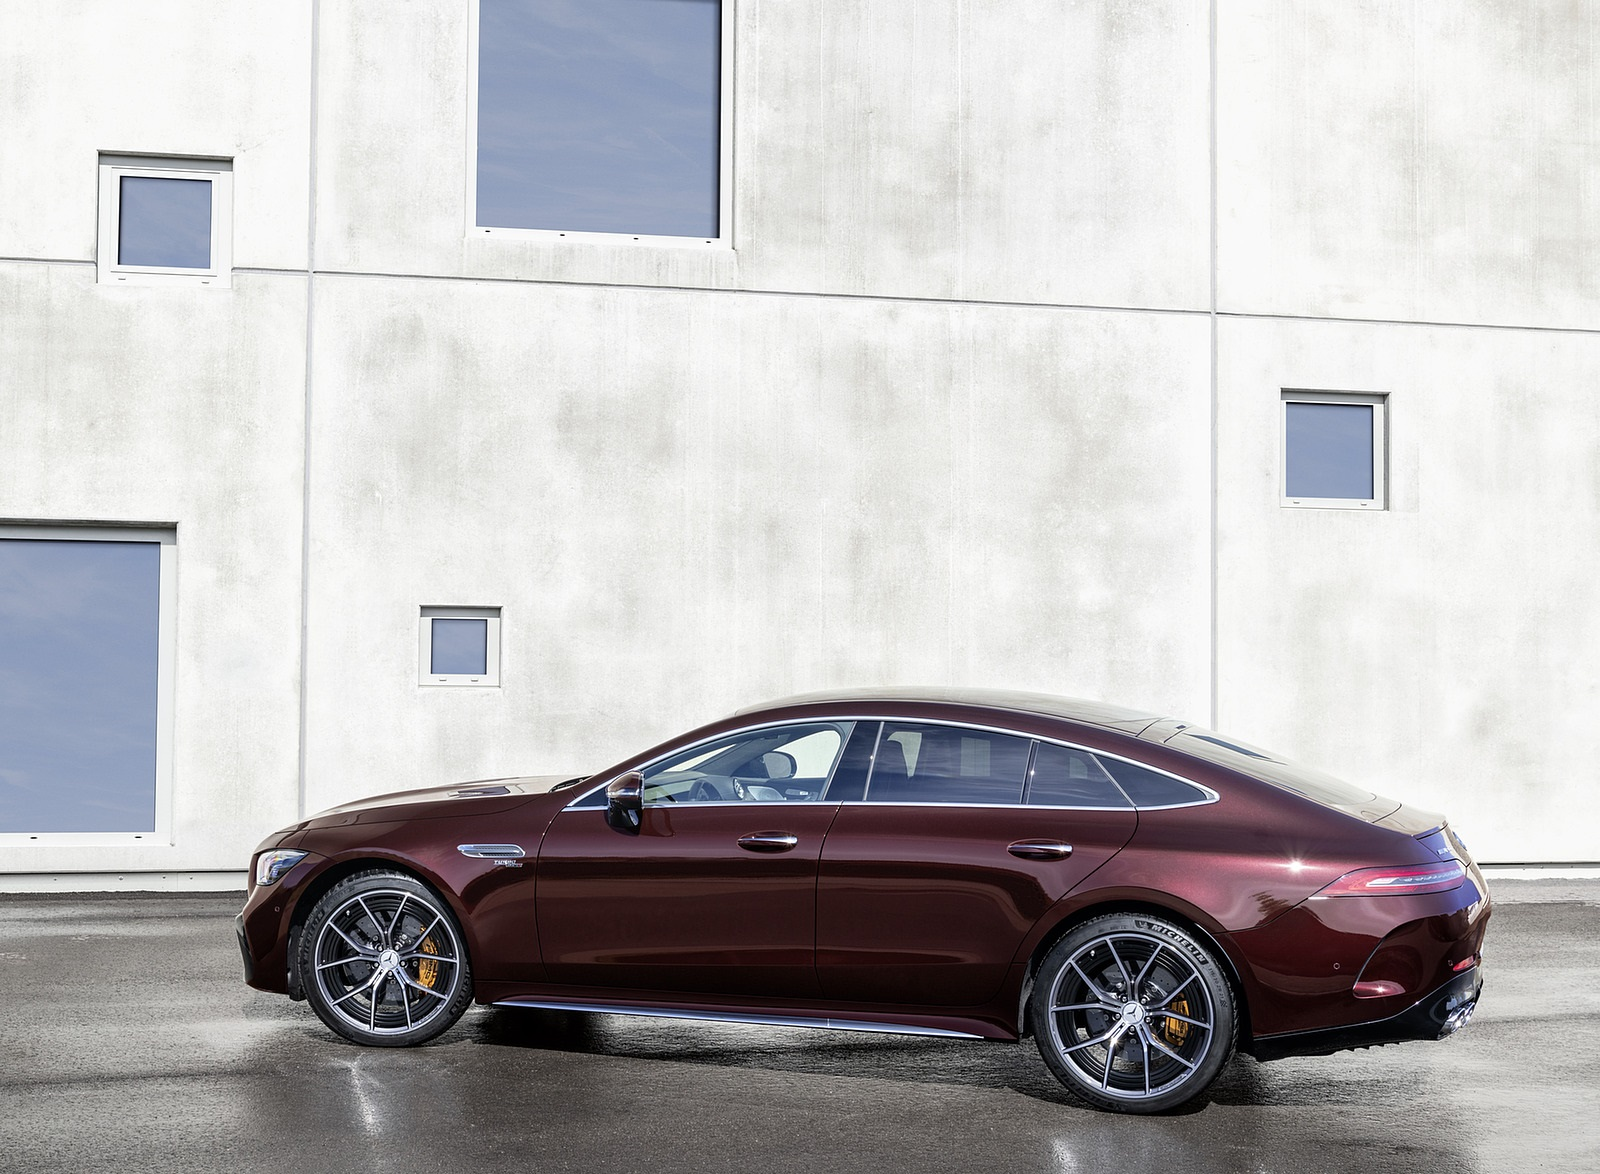 2022 Mercedes-AMG GT 53 4MATIC+ 4-Door Coupe (Color: Rubellite Red) Side Wallpapers (7)